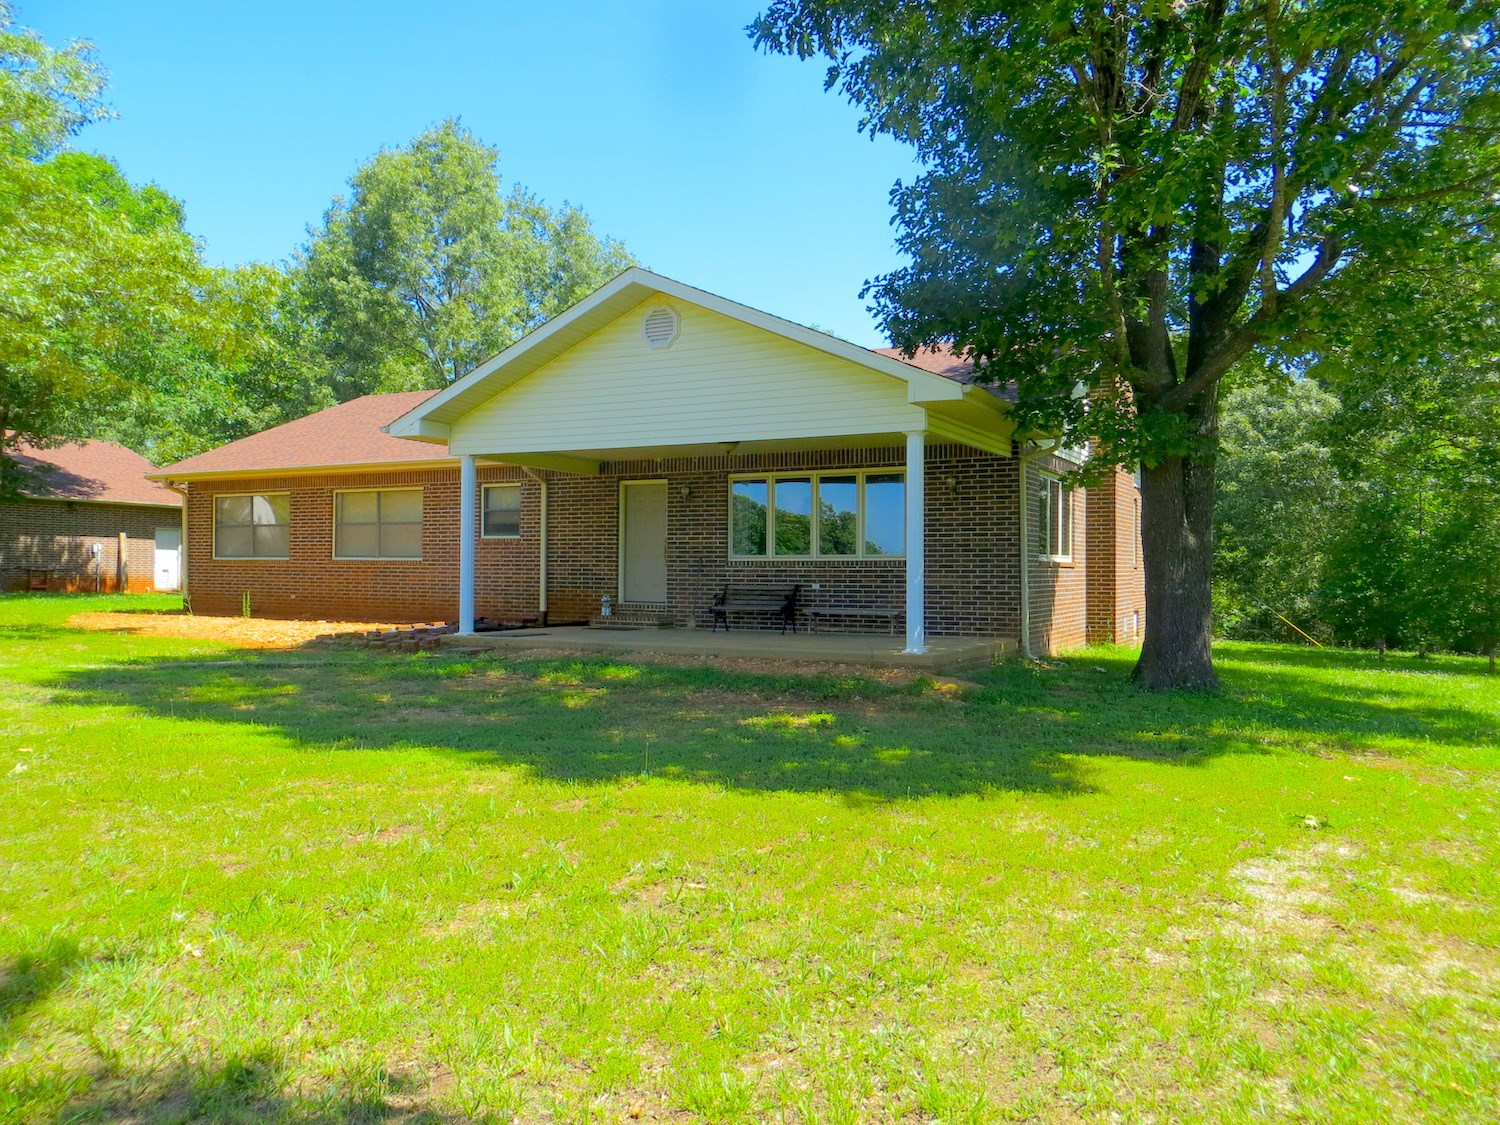 Country Home with Acreage For Sale in Thayer, Missouri